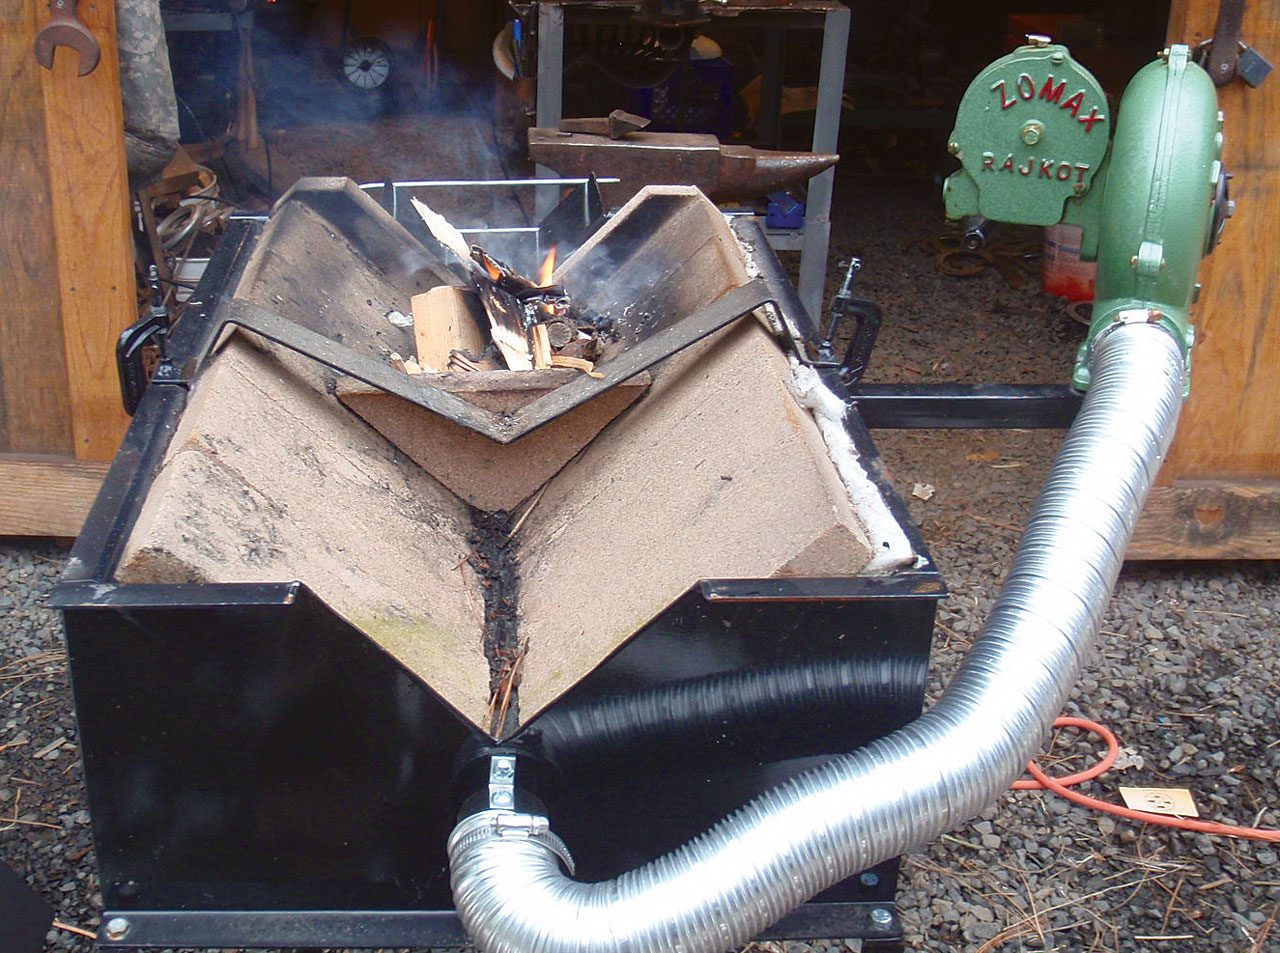 Whitlox Wood-Fired Forge